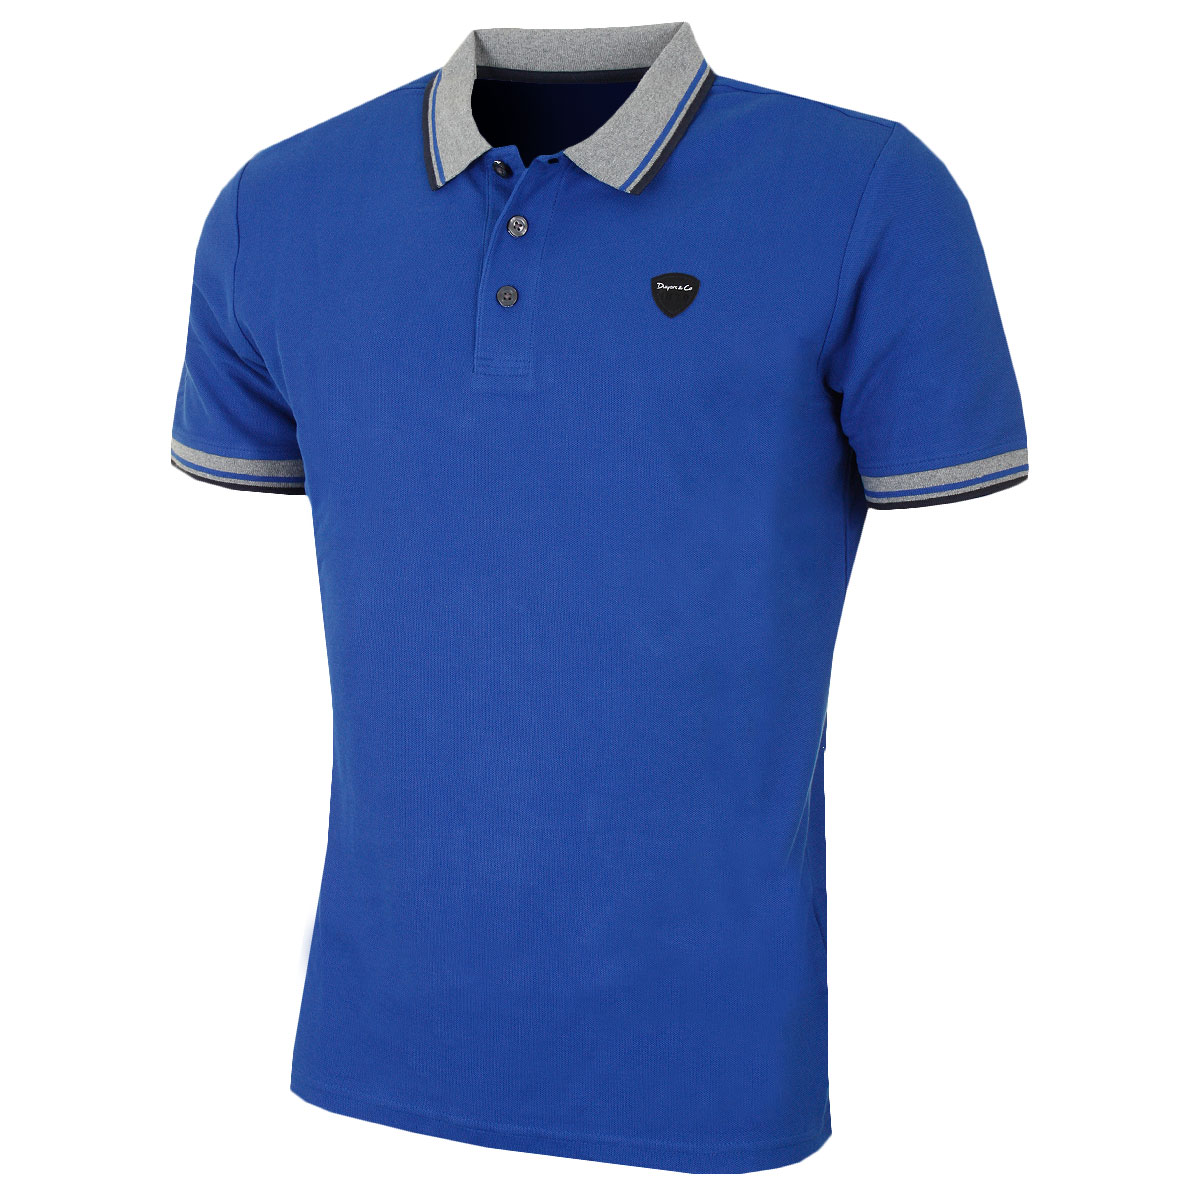 Dwyers co mens knitted collar and cuffs golf polo shirt for Knitted polo shirt mens